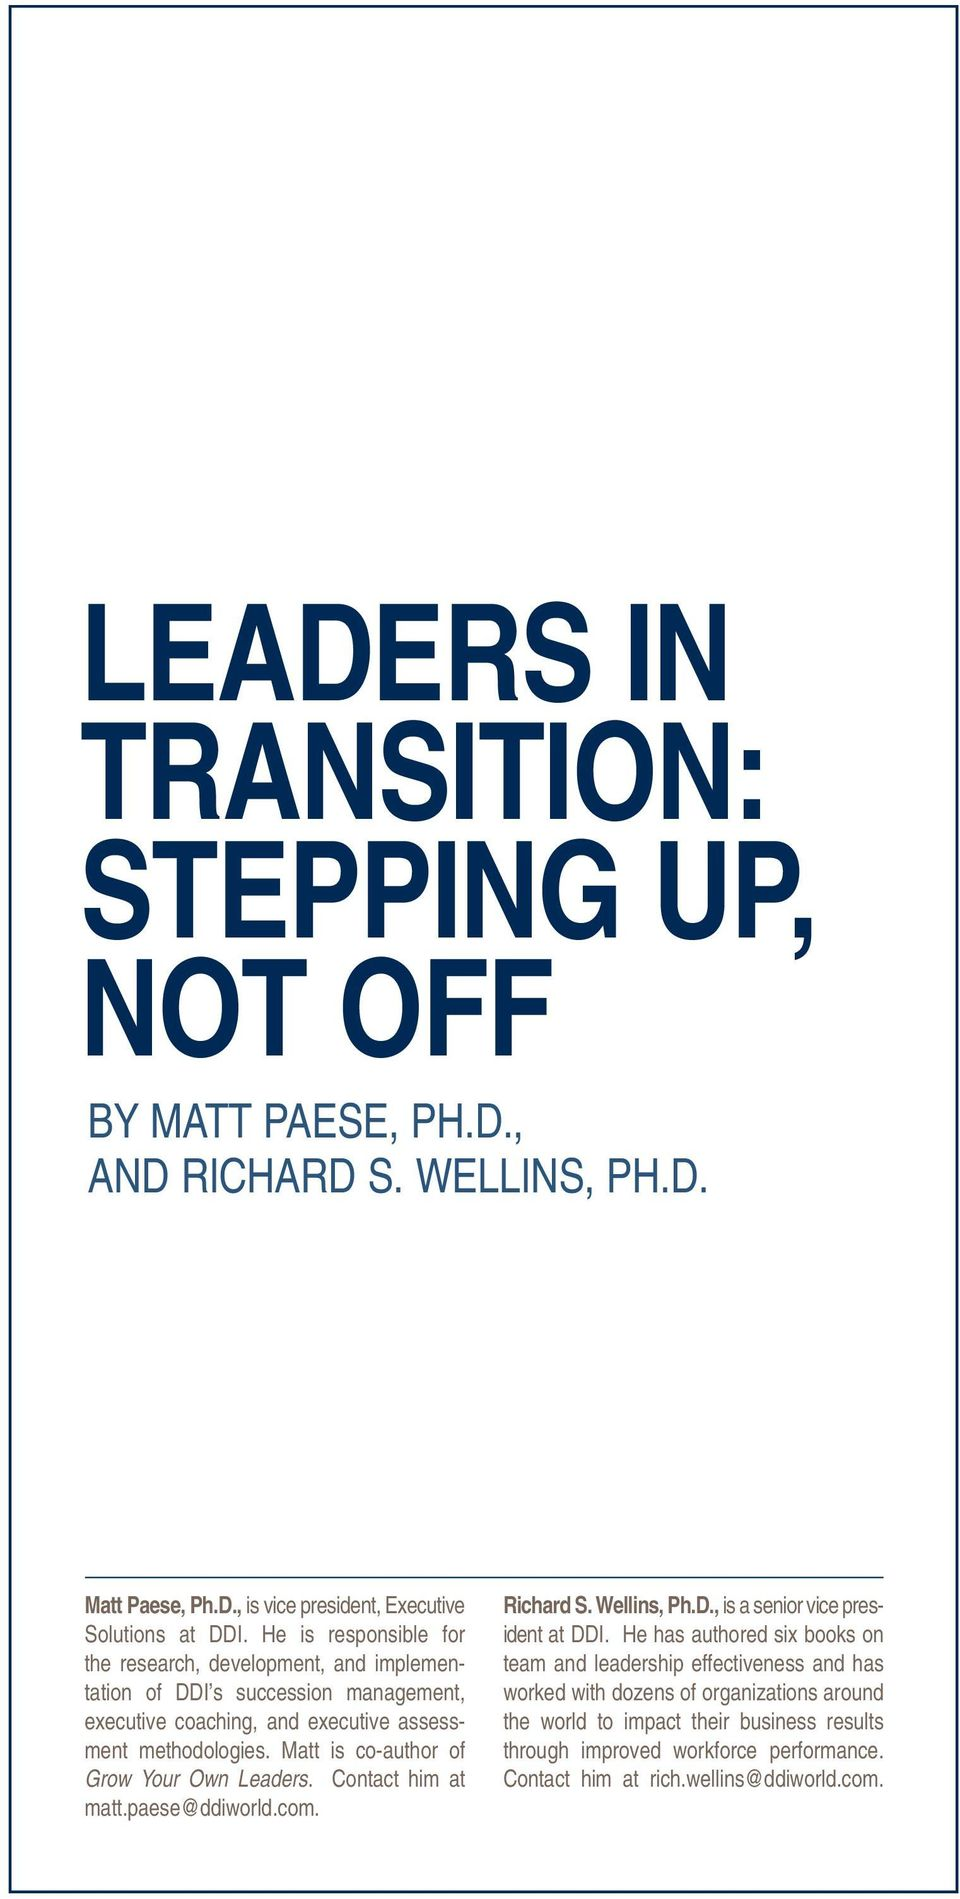 Matt is co-author of Grow Your Own Leaders. Contact him at matt.paese@ddiworld.com. Richard S. Wellins, Ph.D., is a senior vice president at DDI.